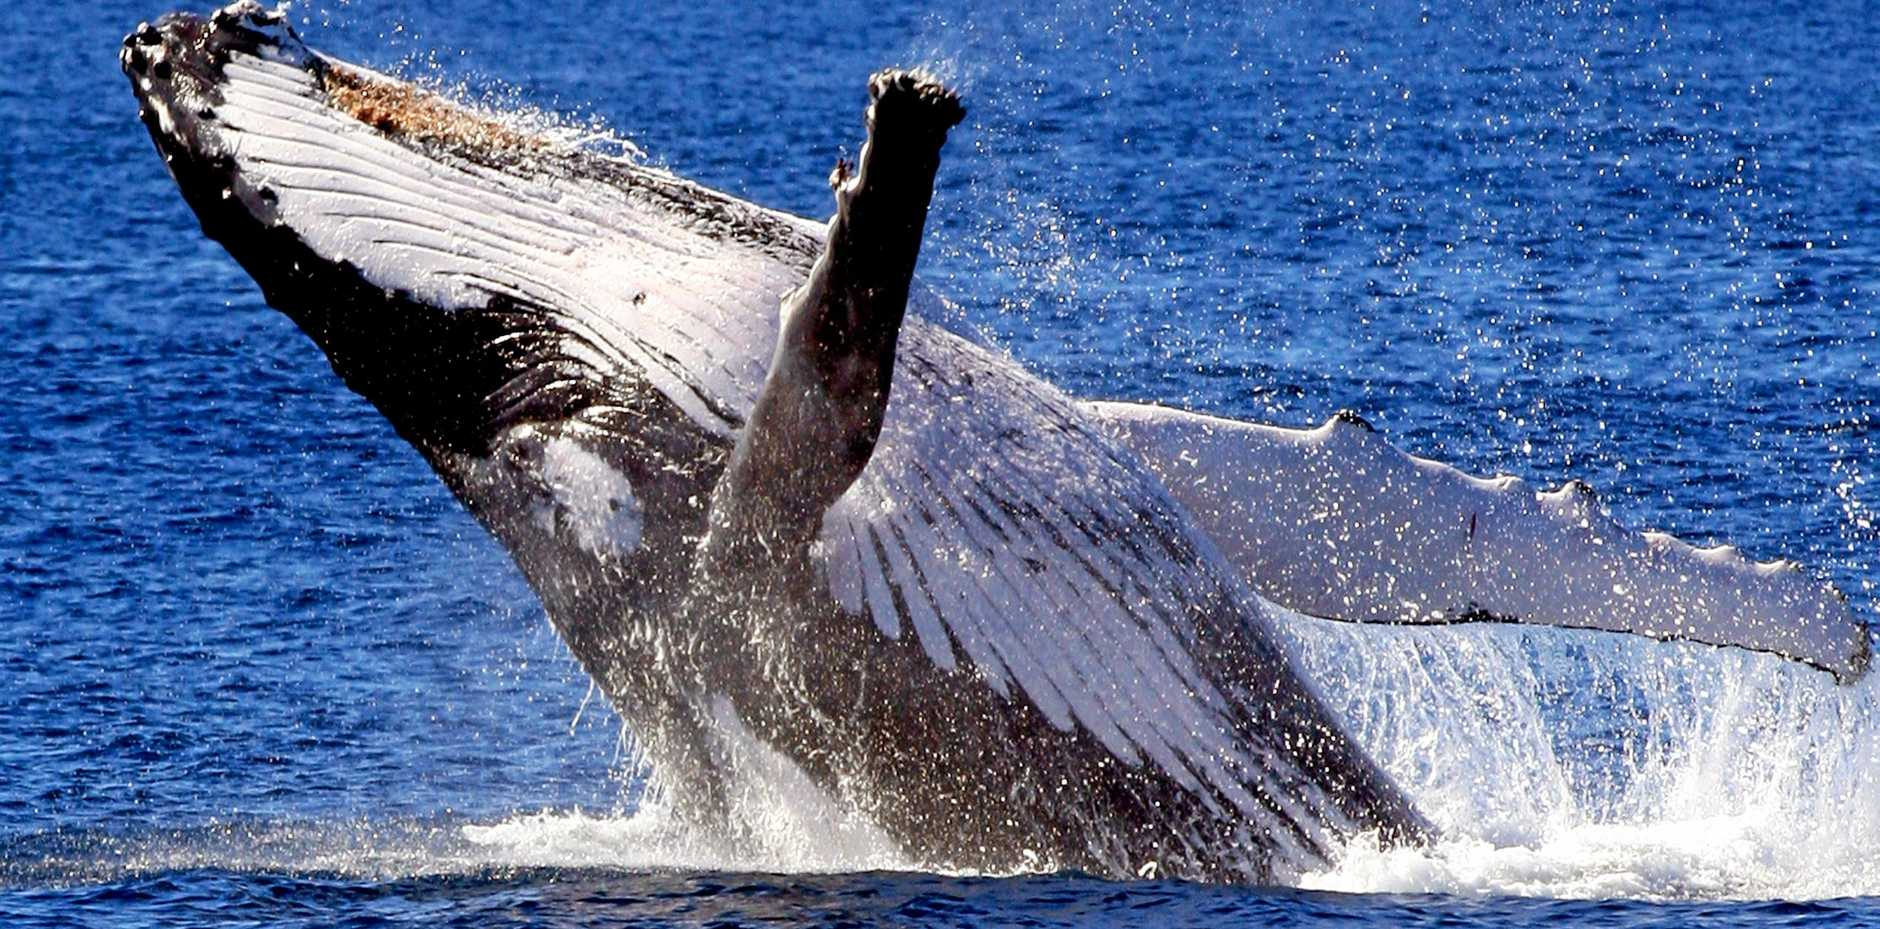 YOU BEAUTY: A whale spotted during a Coolangatta Whale Watching cruise.